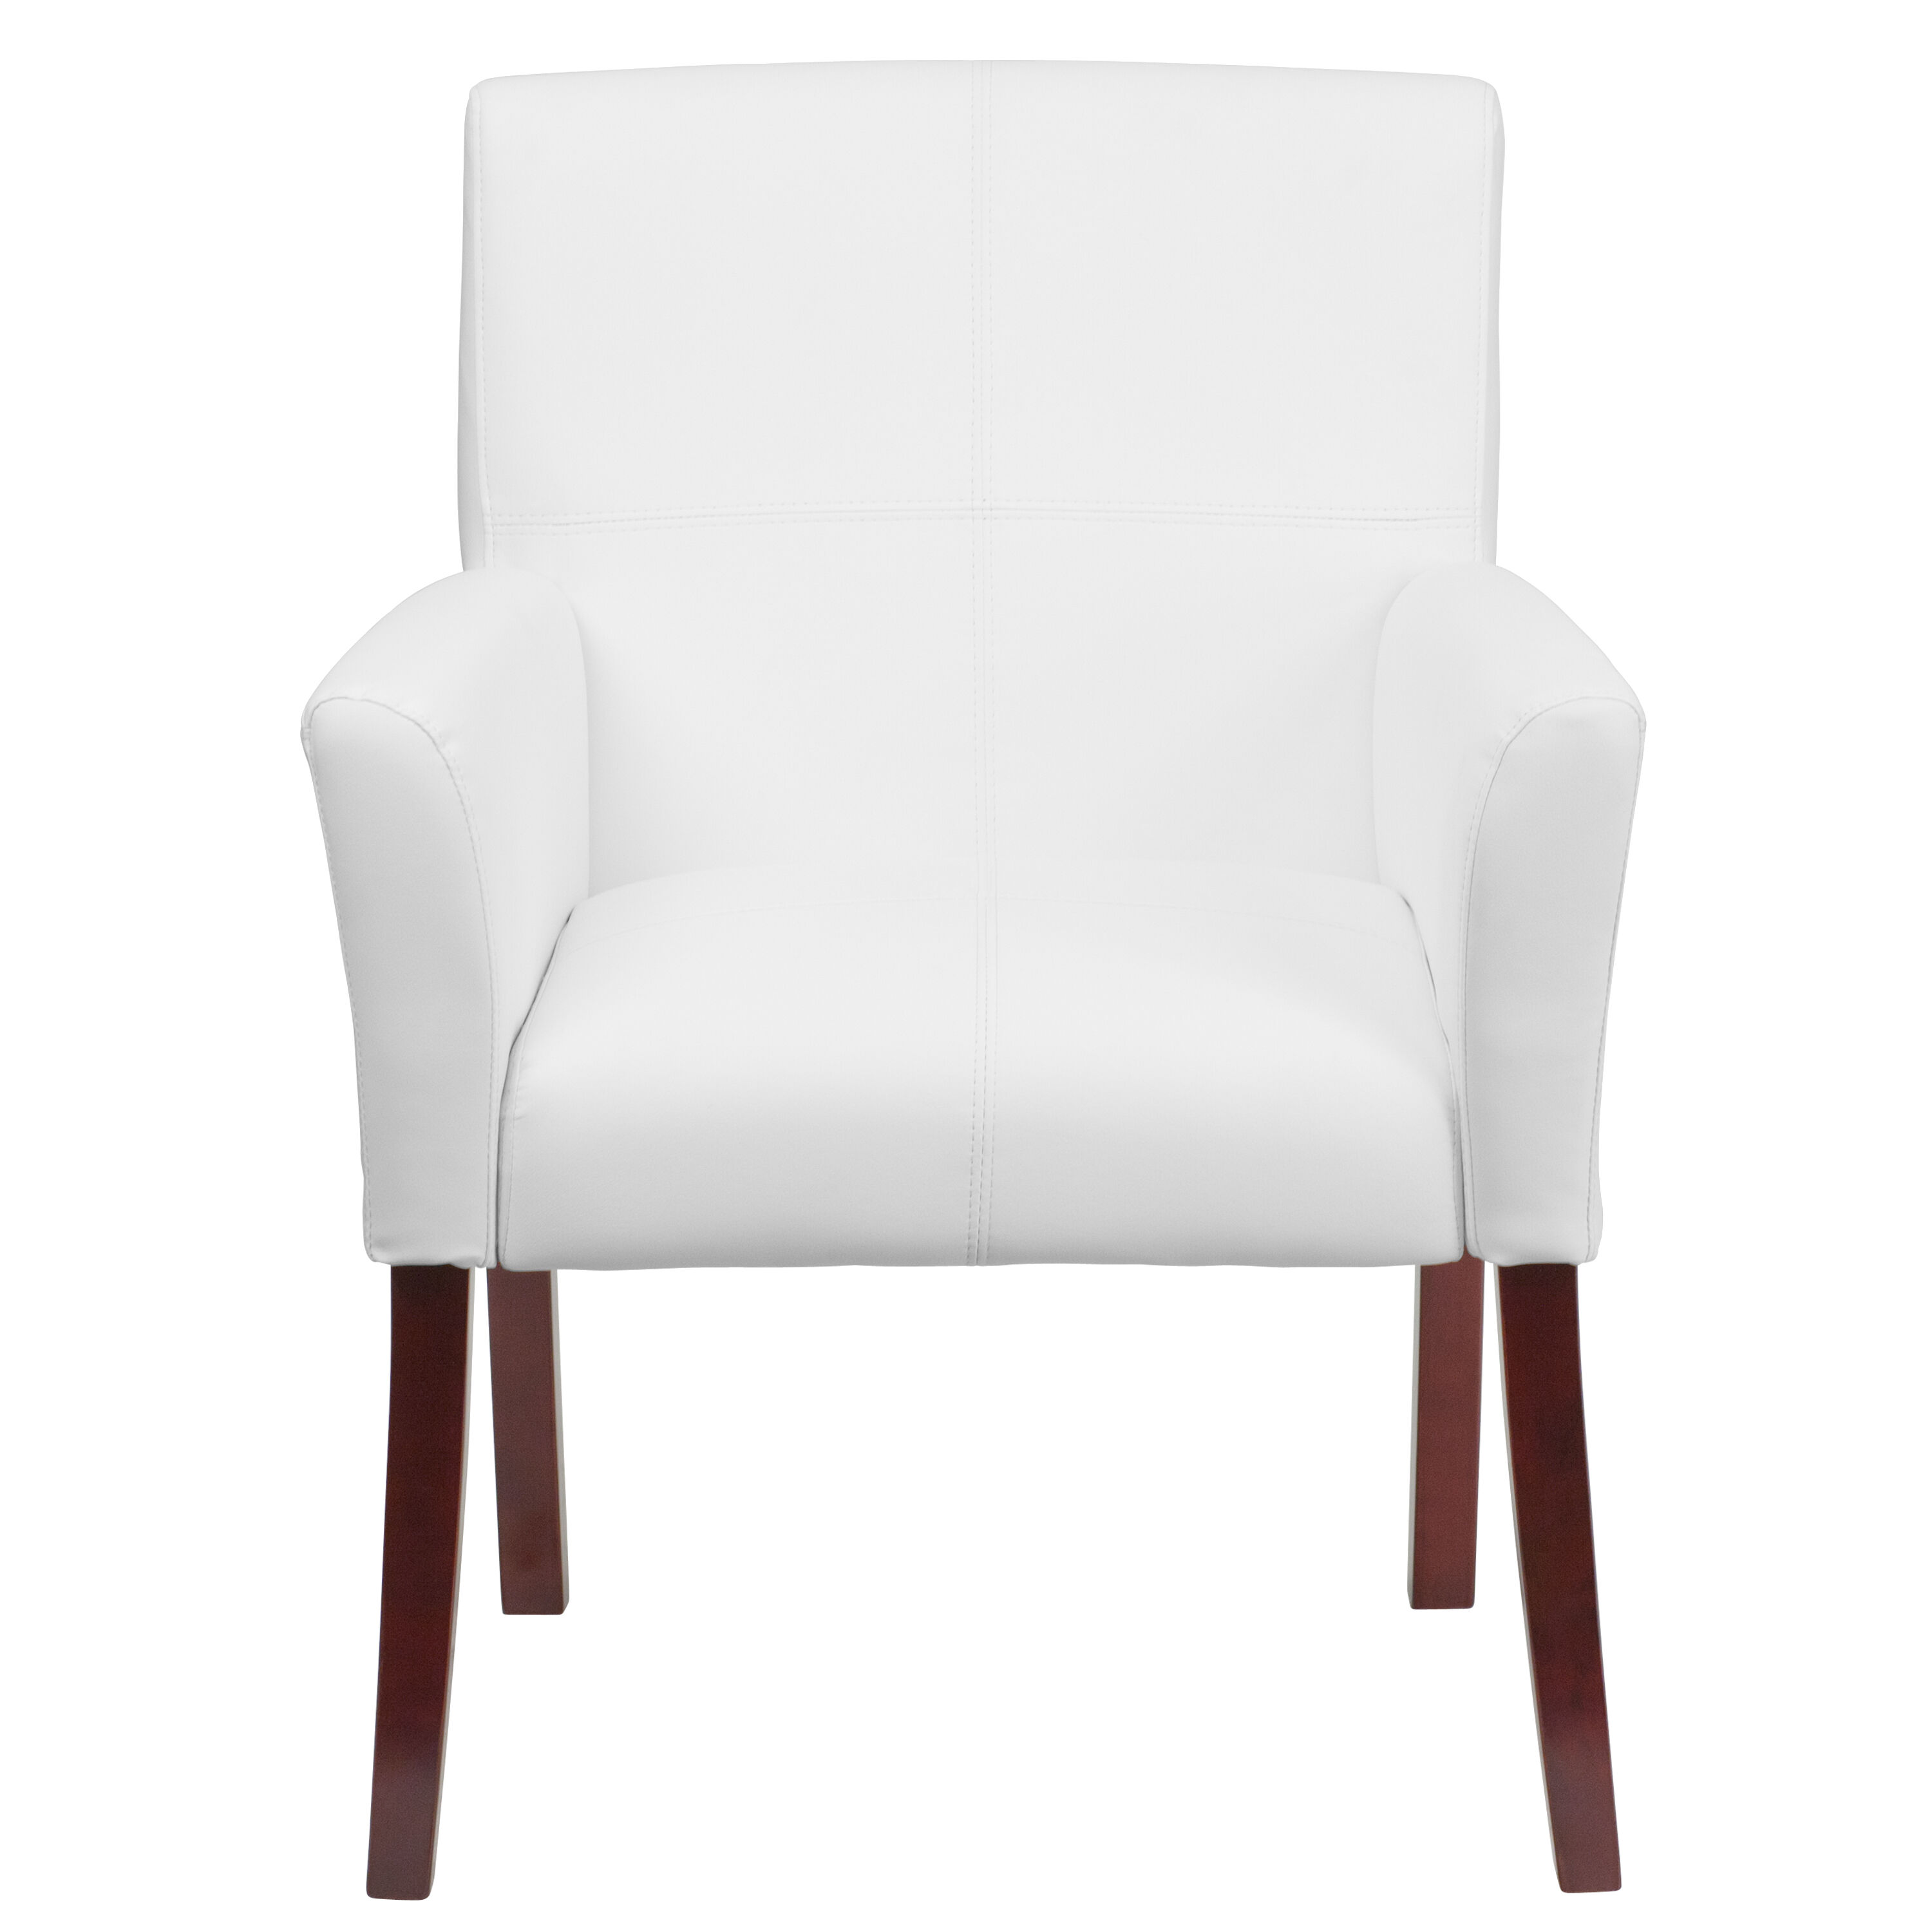 white leather chairs for sale wheelchair ramp van side chair bt 353 wh gg bizchair com our executive reception with mahogany legs is on now